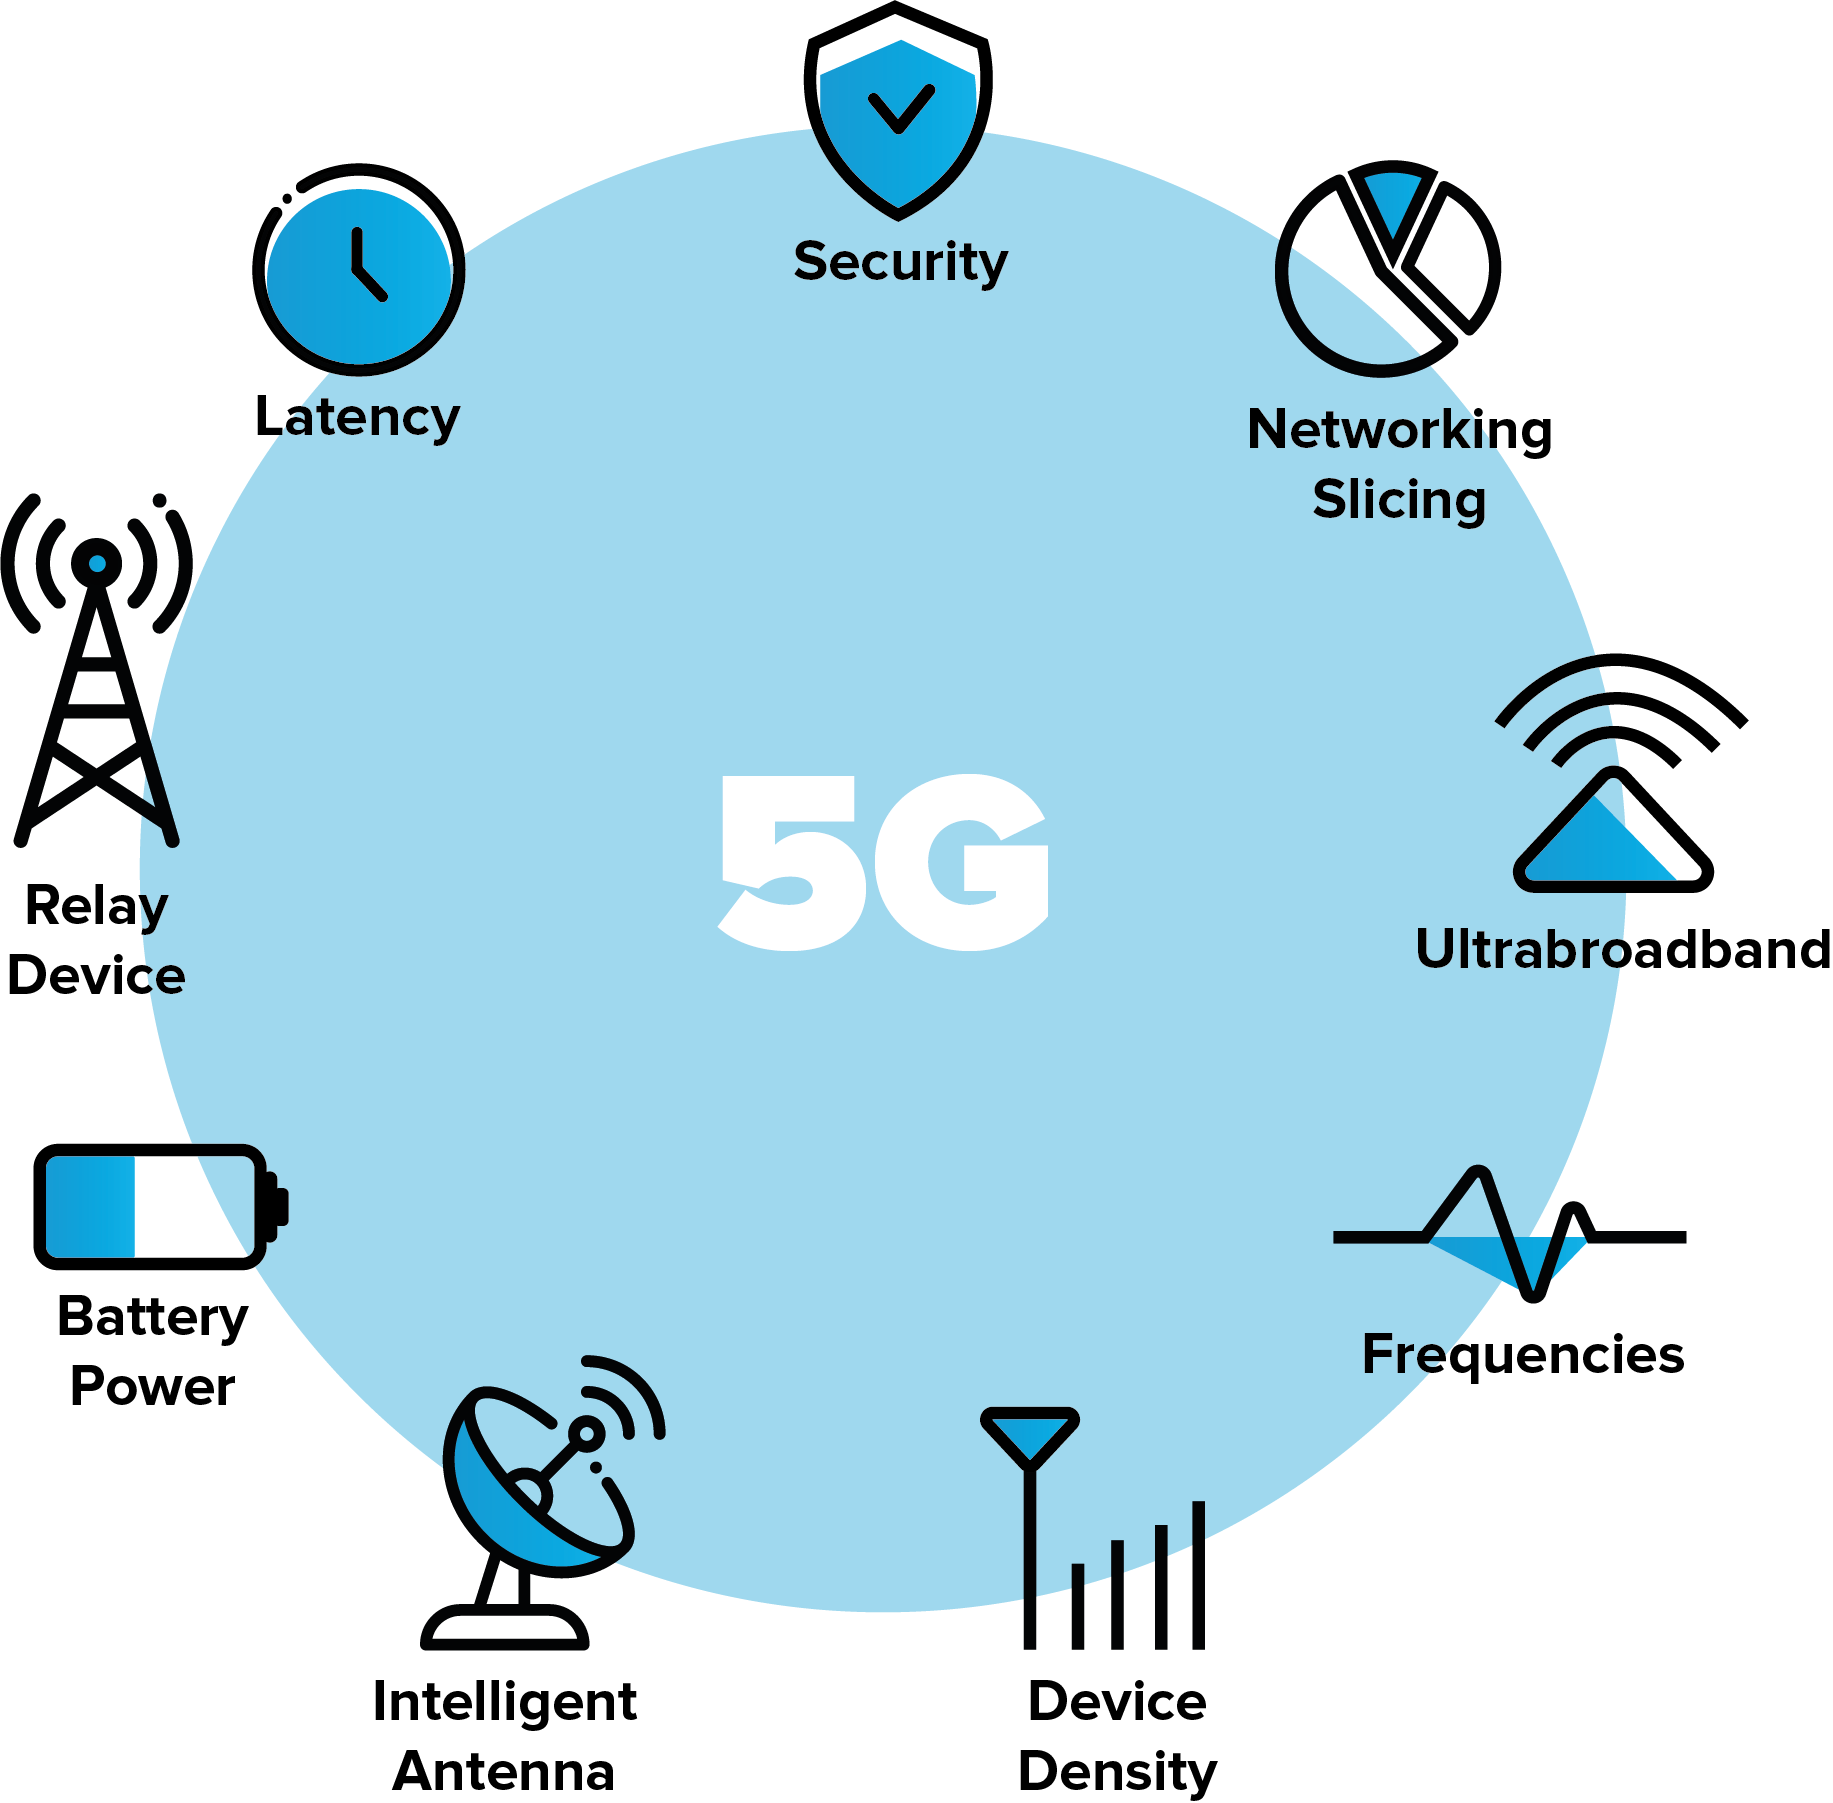 Key technologies that enable 5G